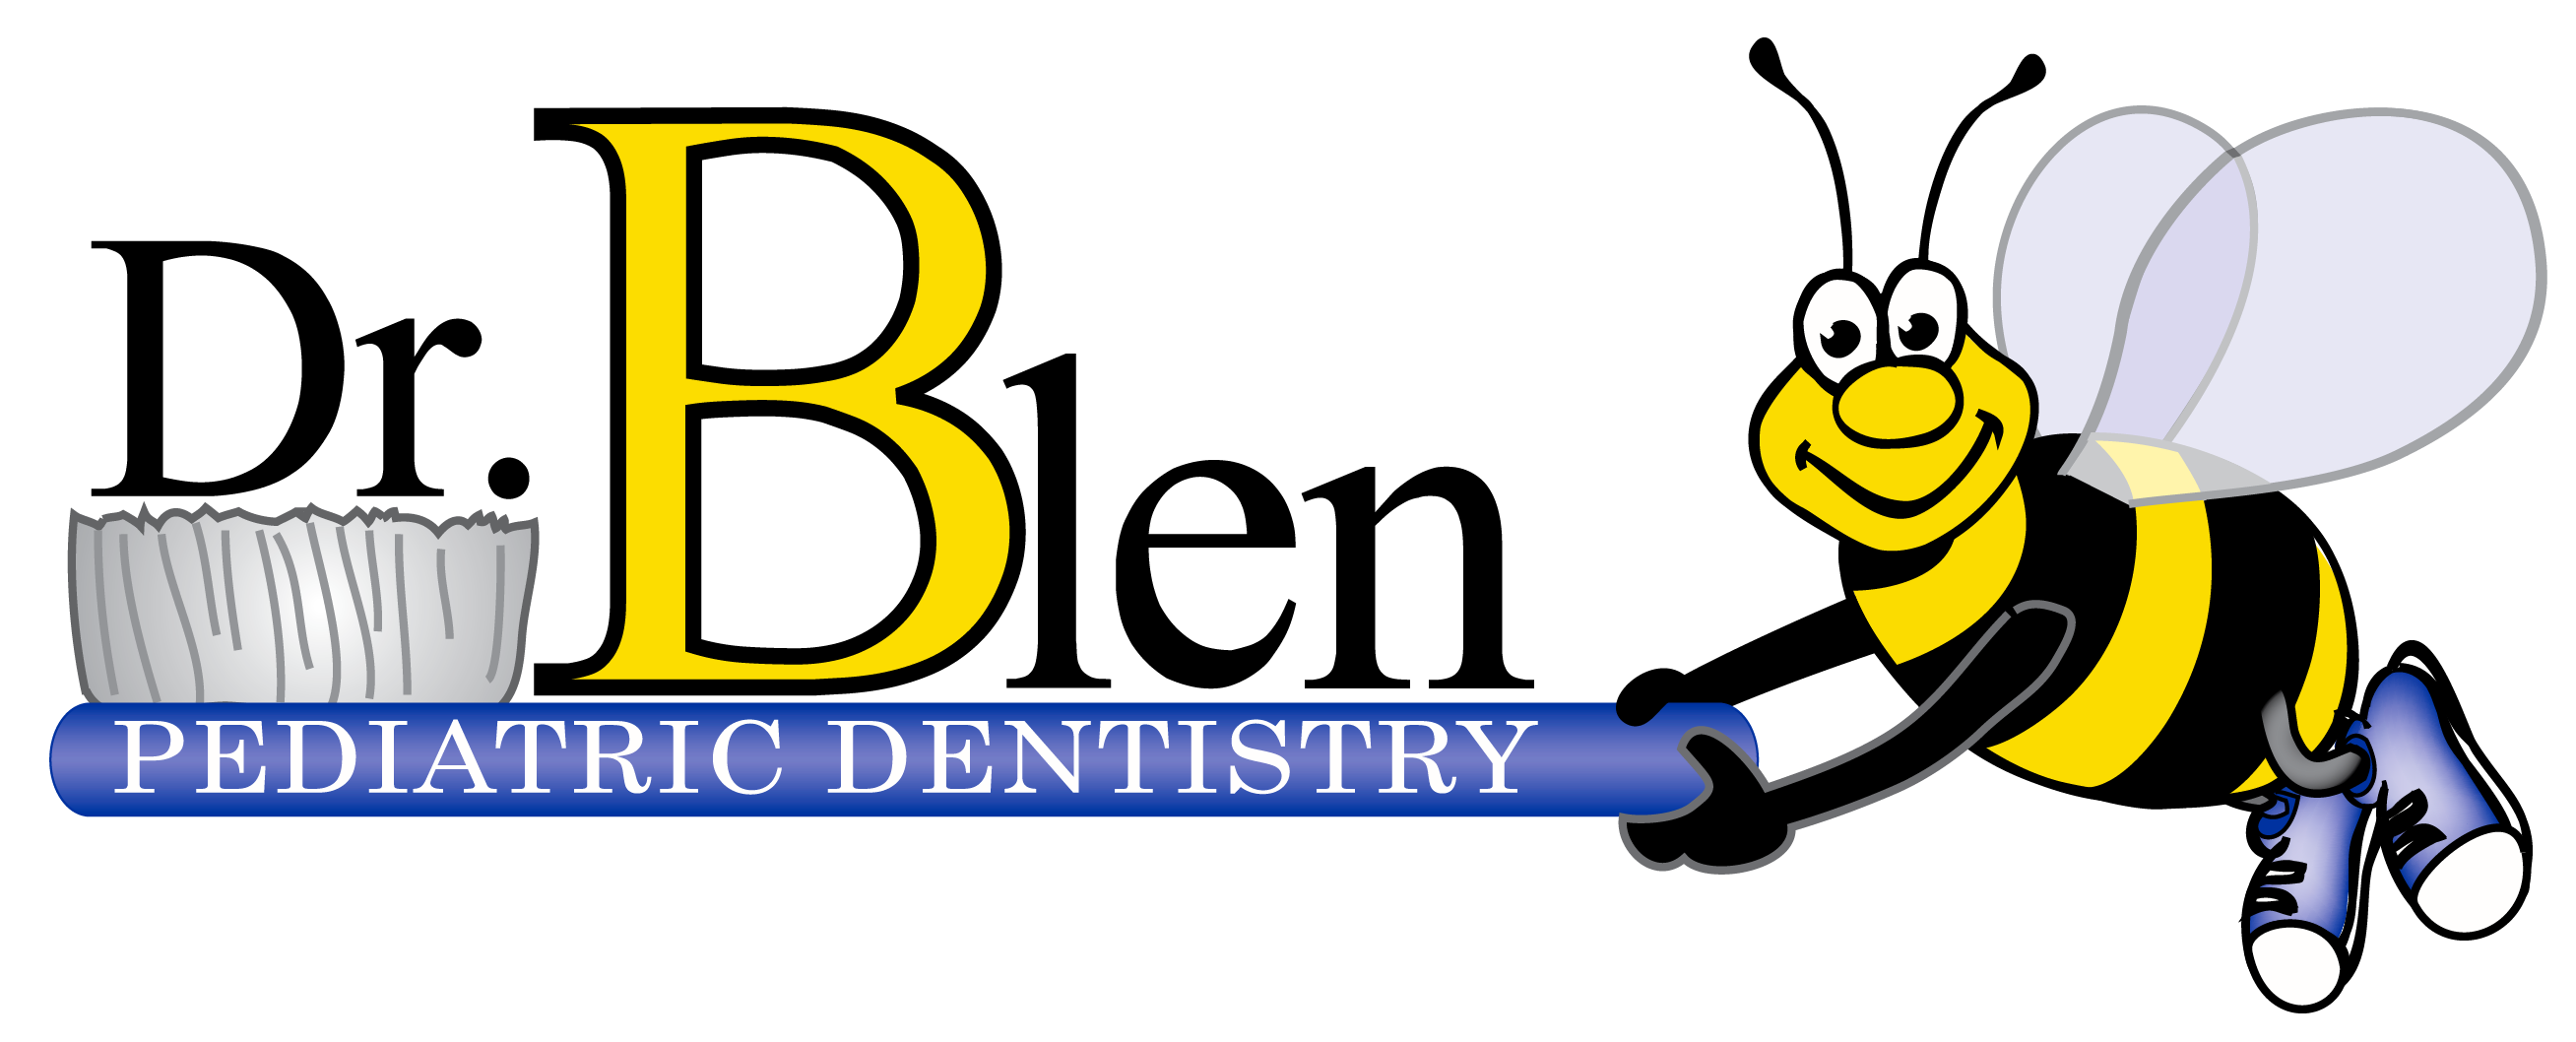 Pediatric memphis tn dr. Dentist clipart visited